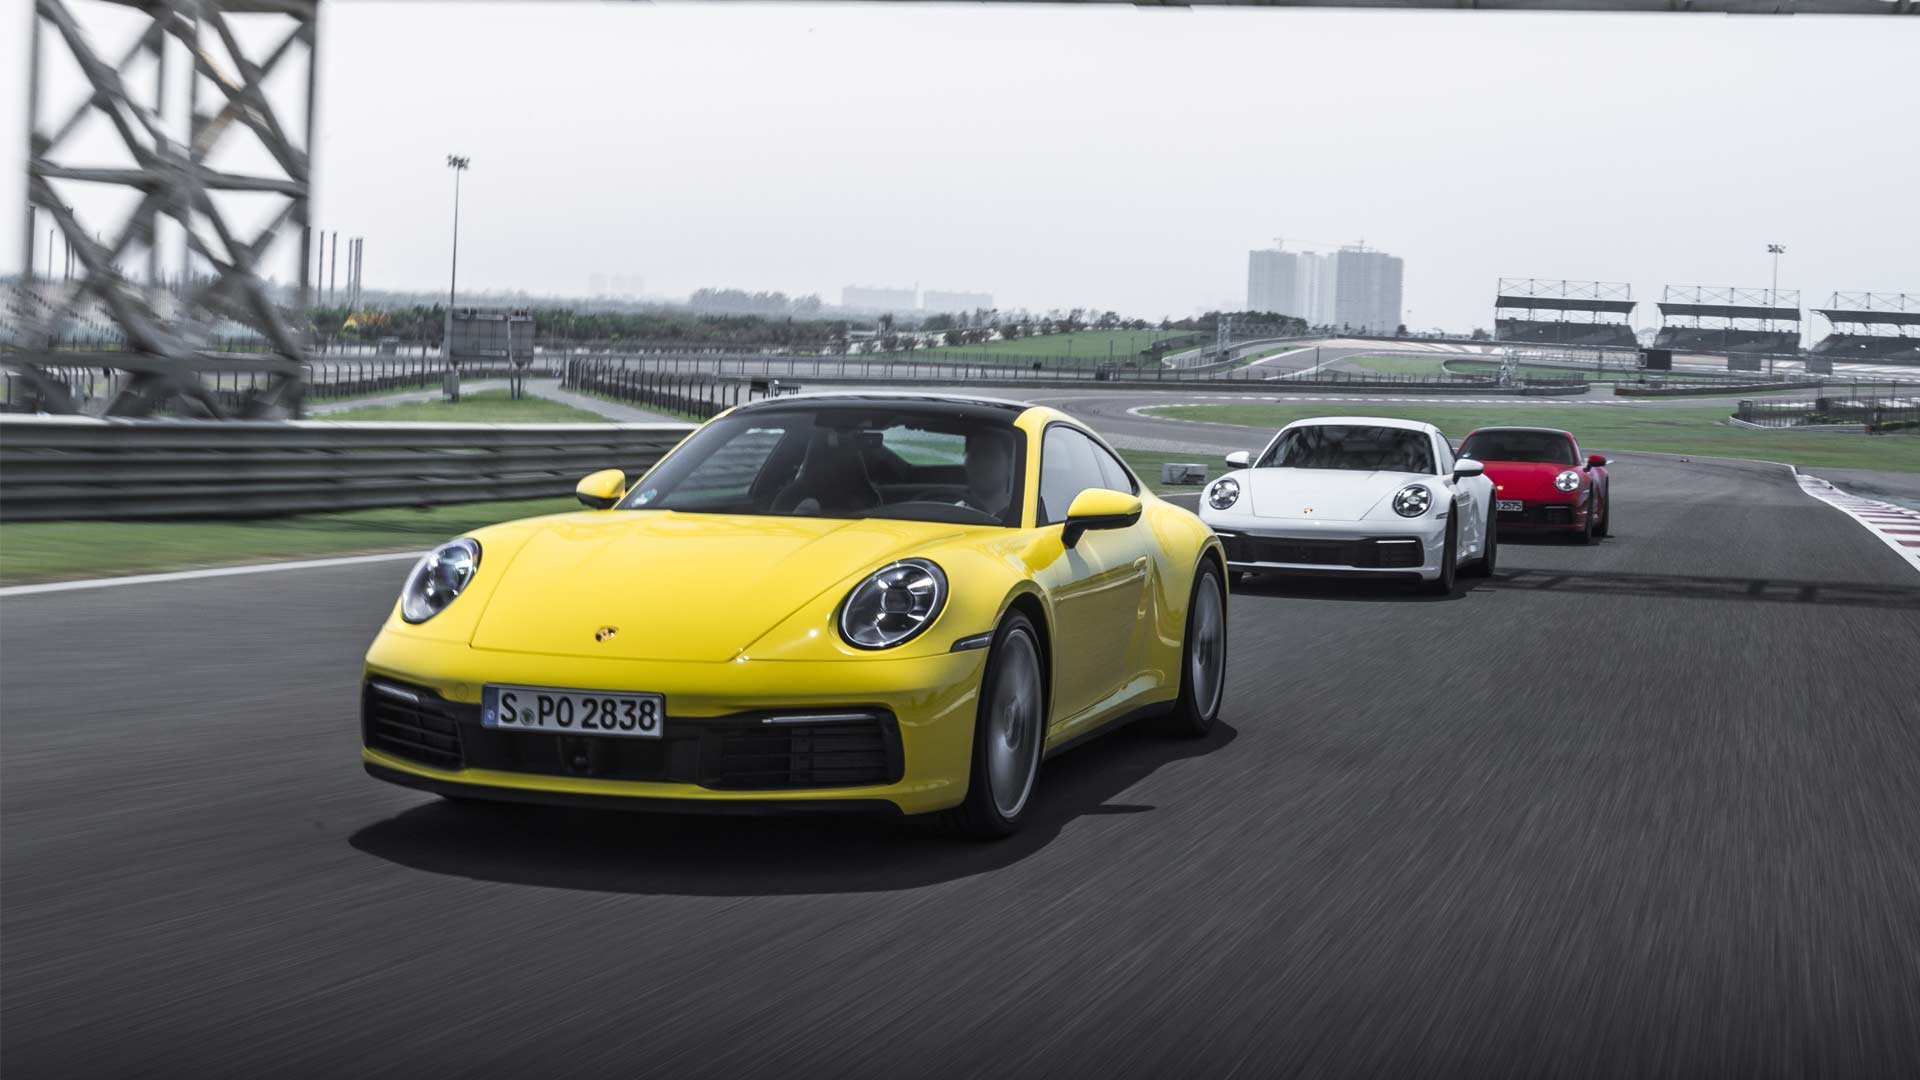 8th-generation-of-the-Porsche-911-India-launch-2019-Buddh-International-Circuit_3